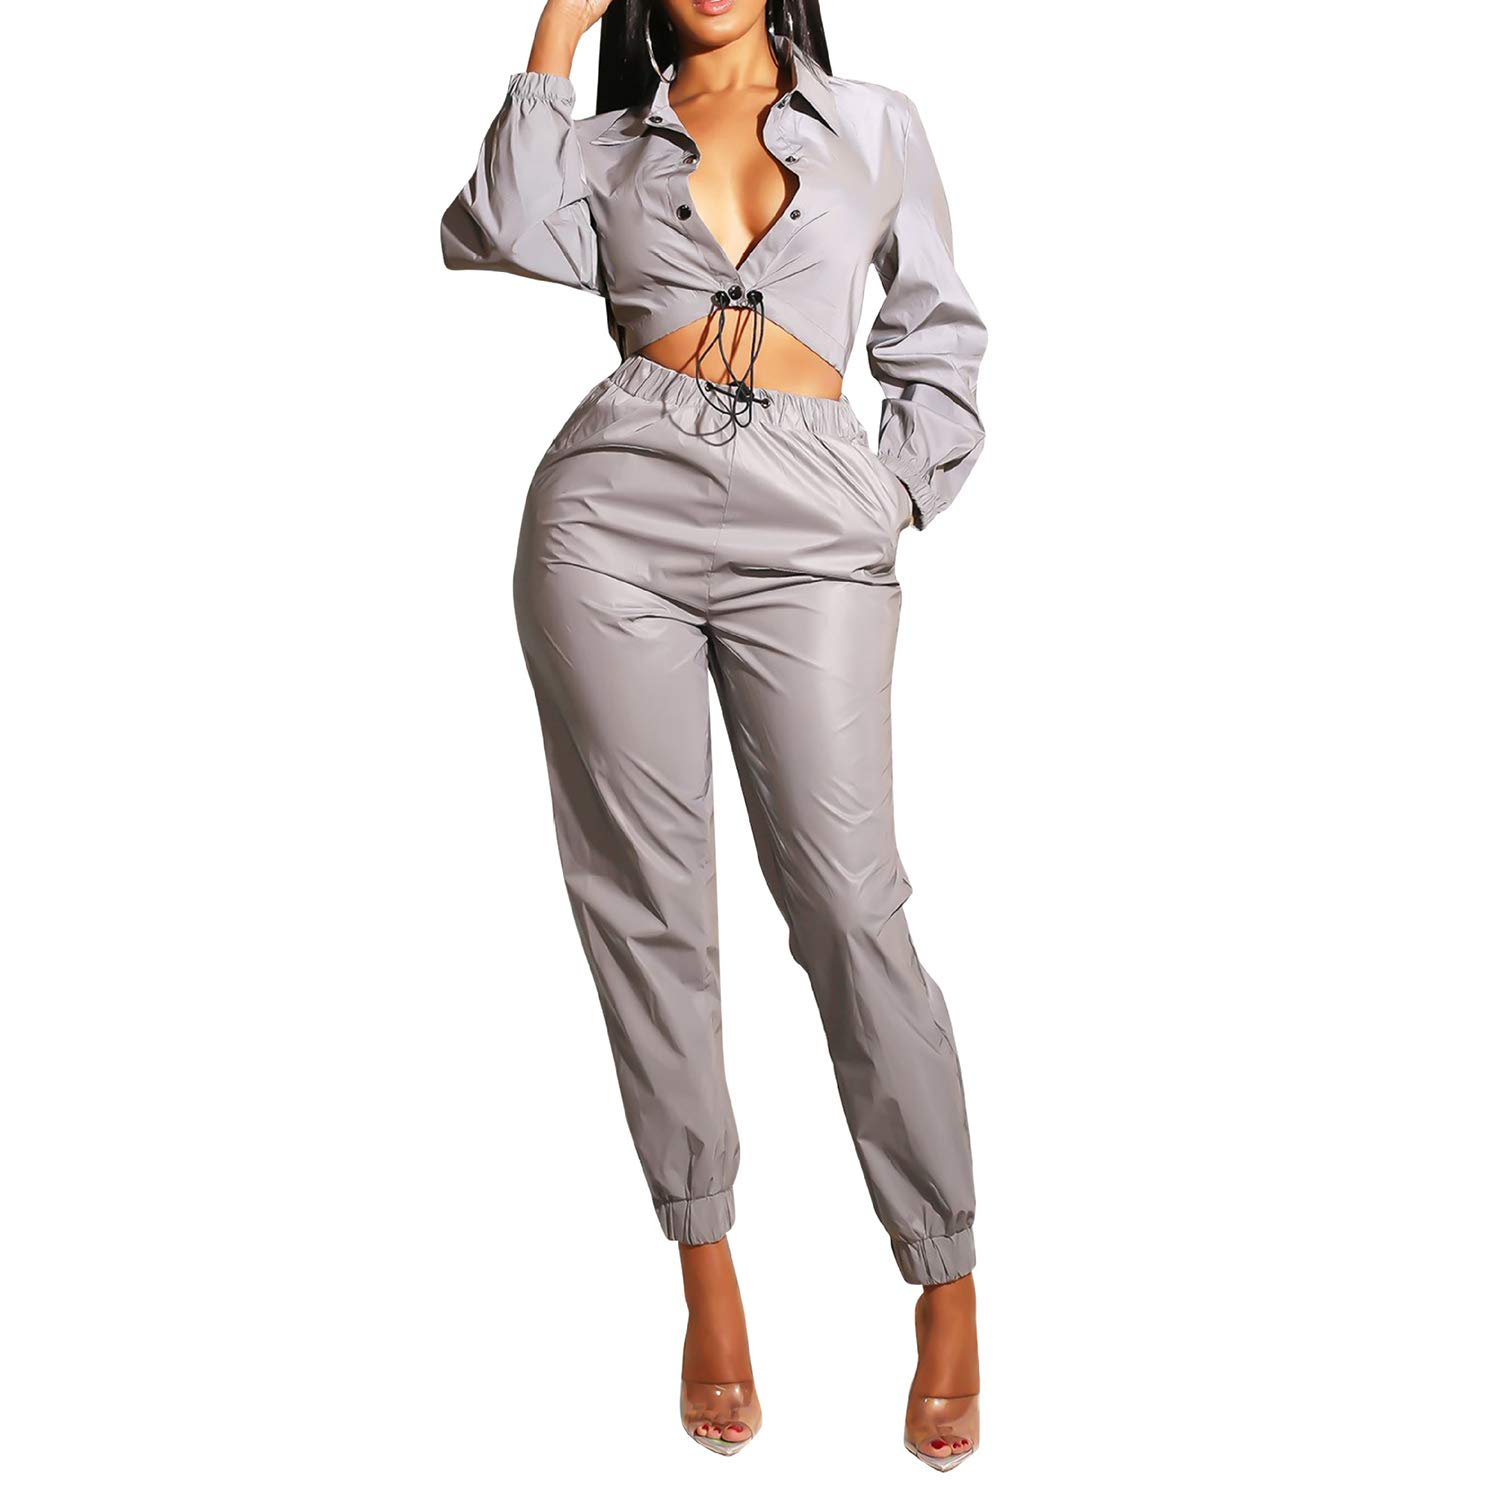 2 Piece Outfits Tracksuit Button Down Sweatpants Set Bodycon Jumpsuits Gray M by Sherro